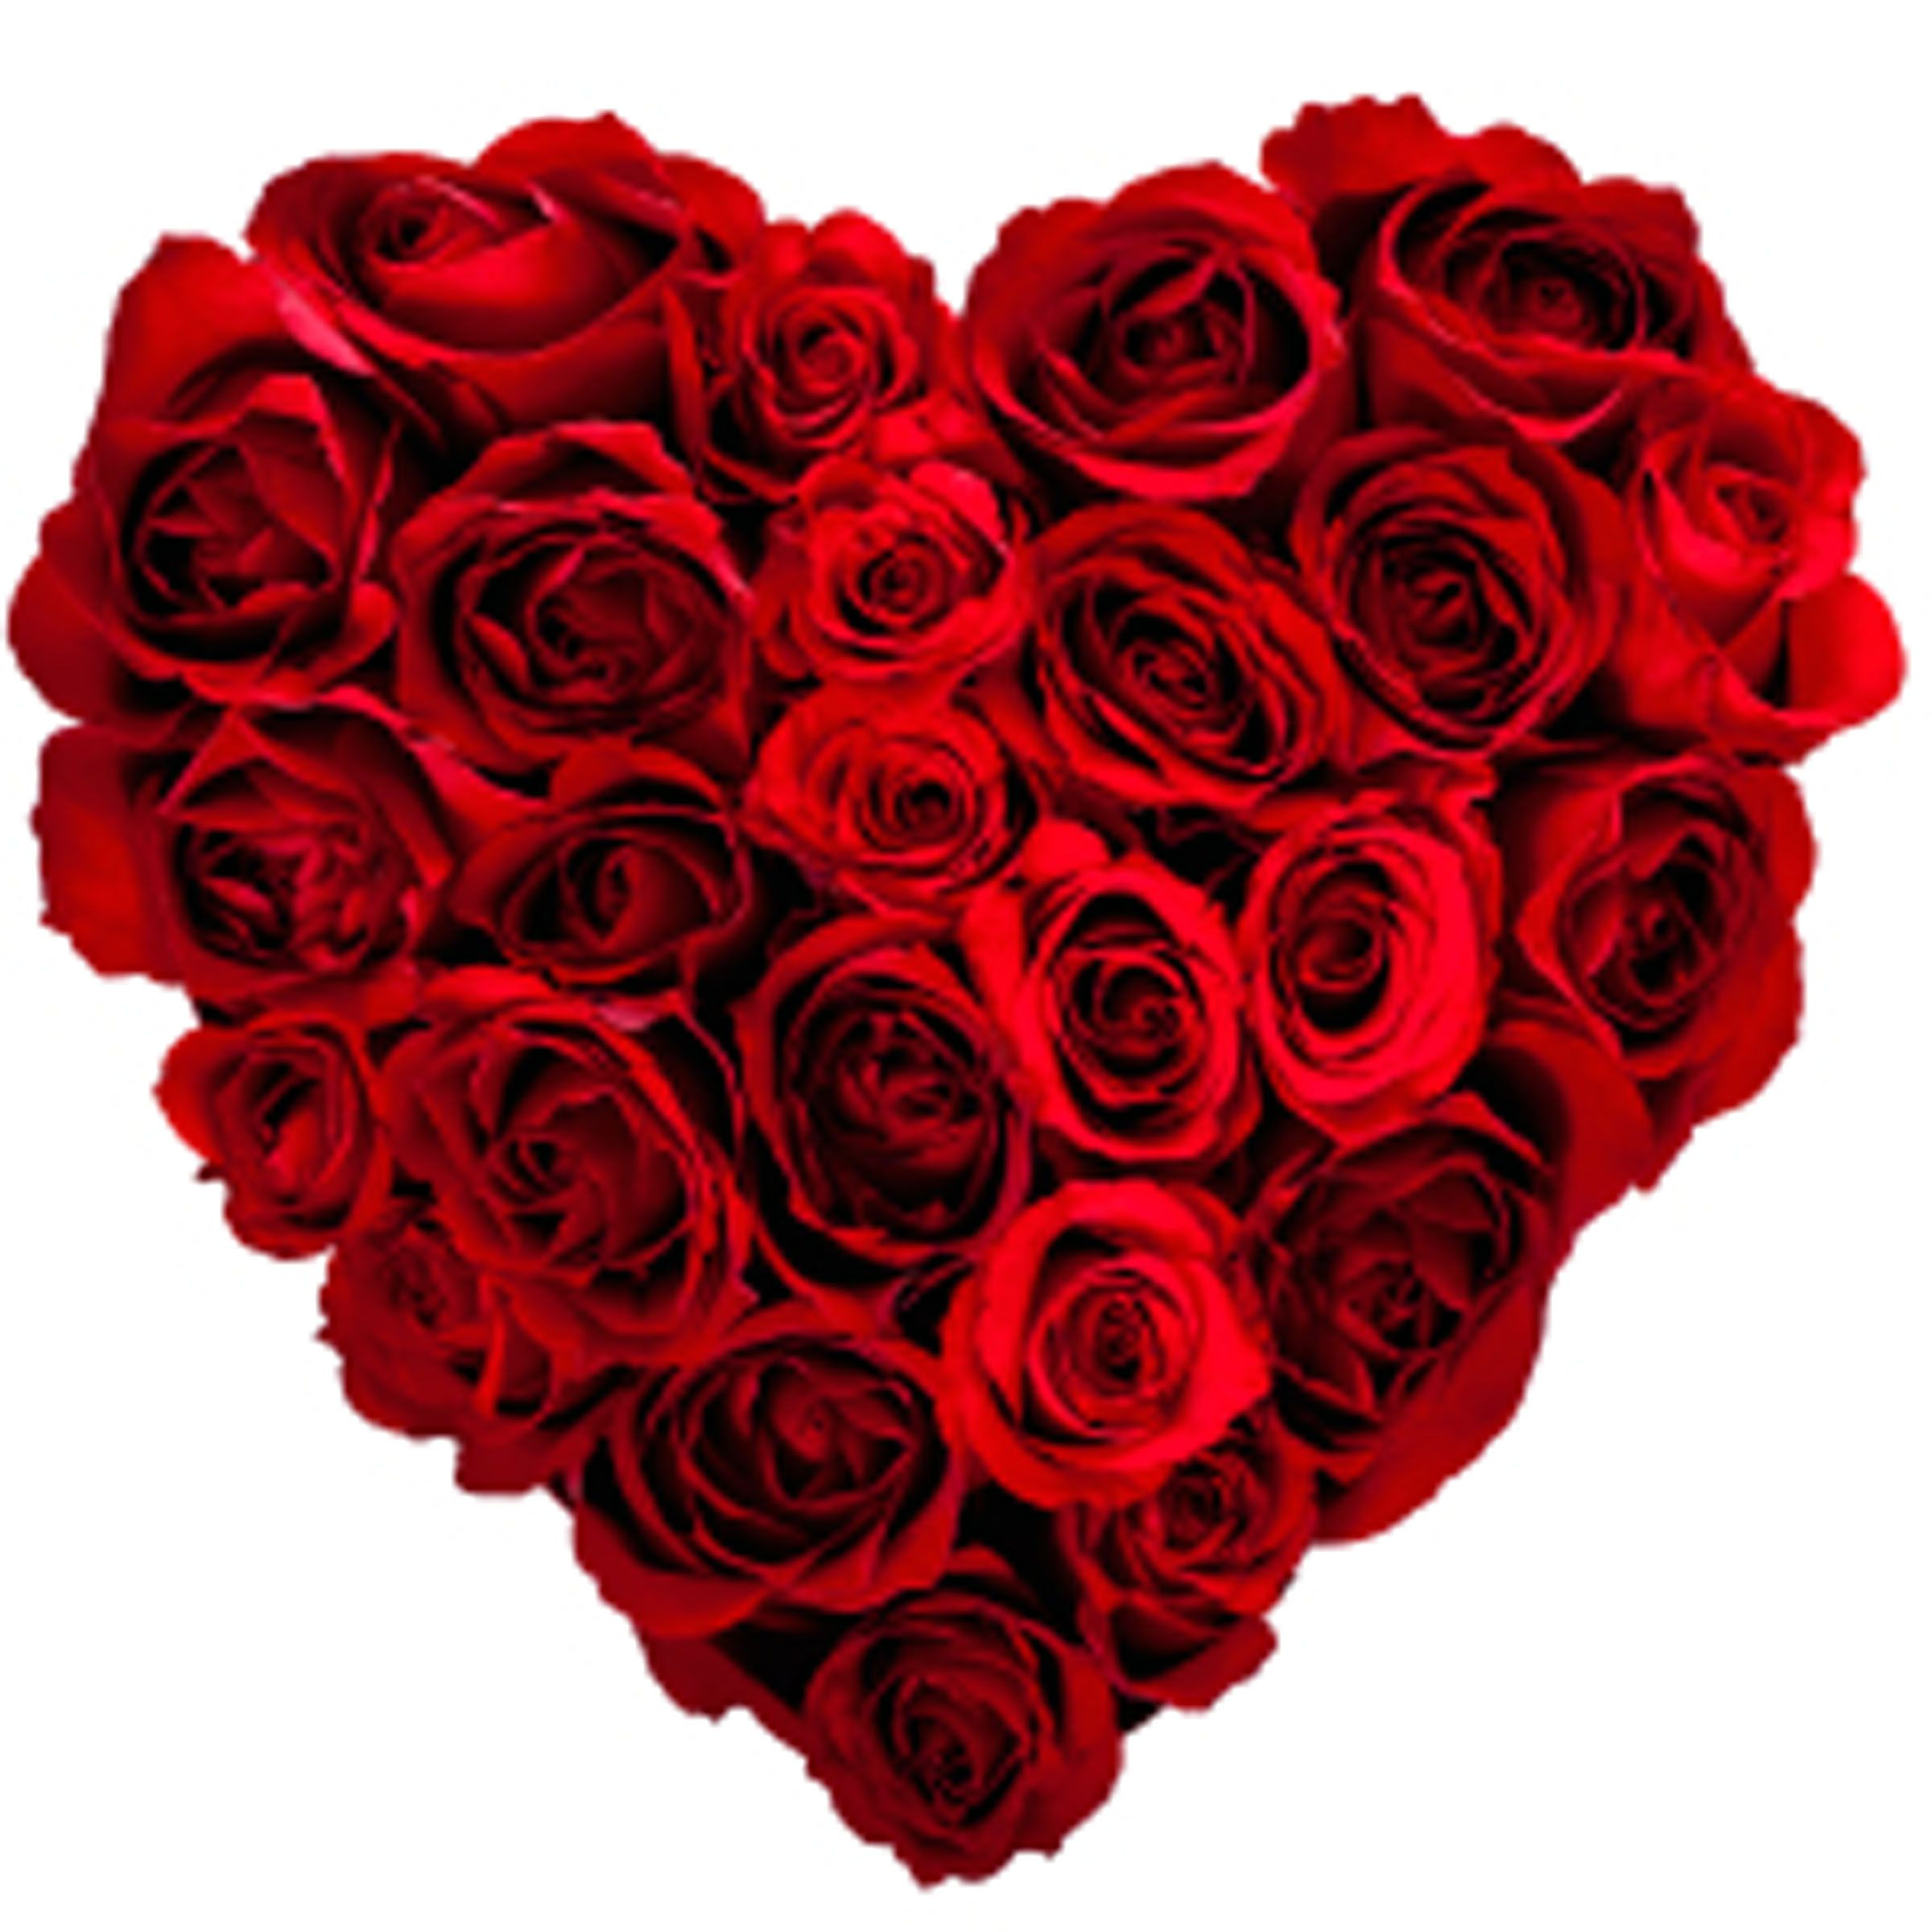 Image result for valentines heart images in roses